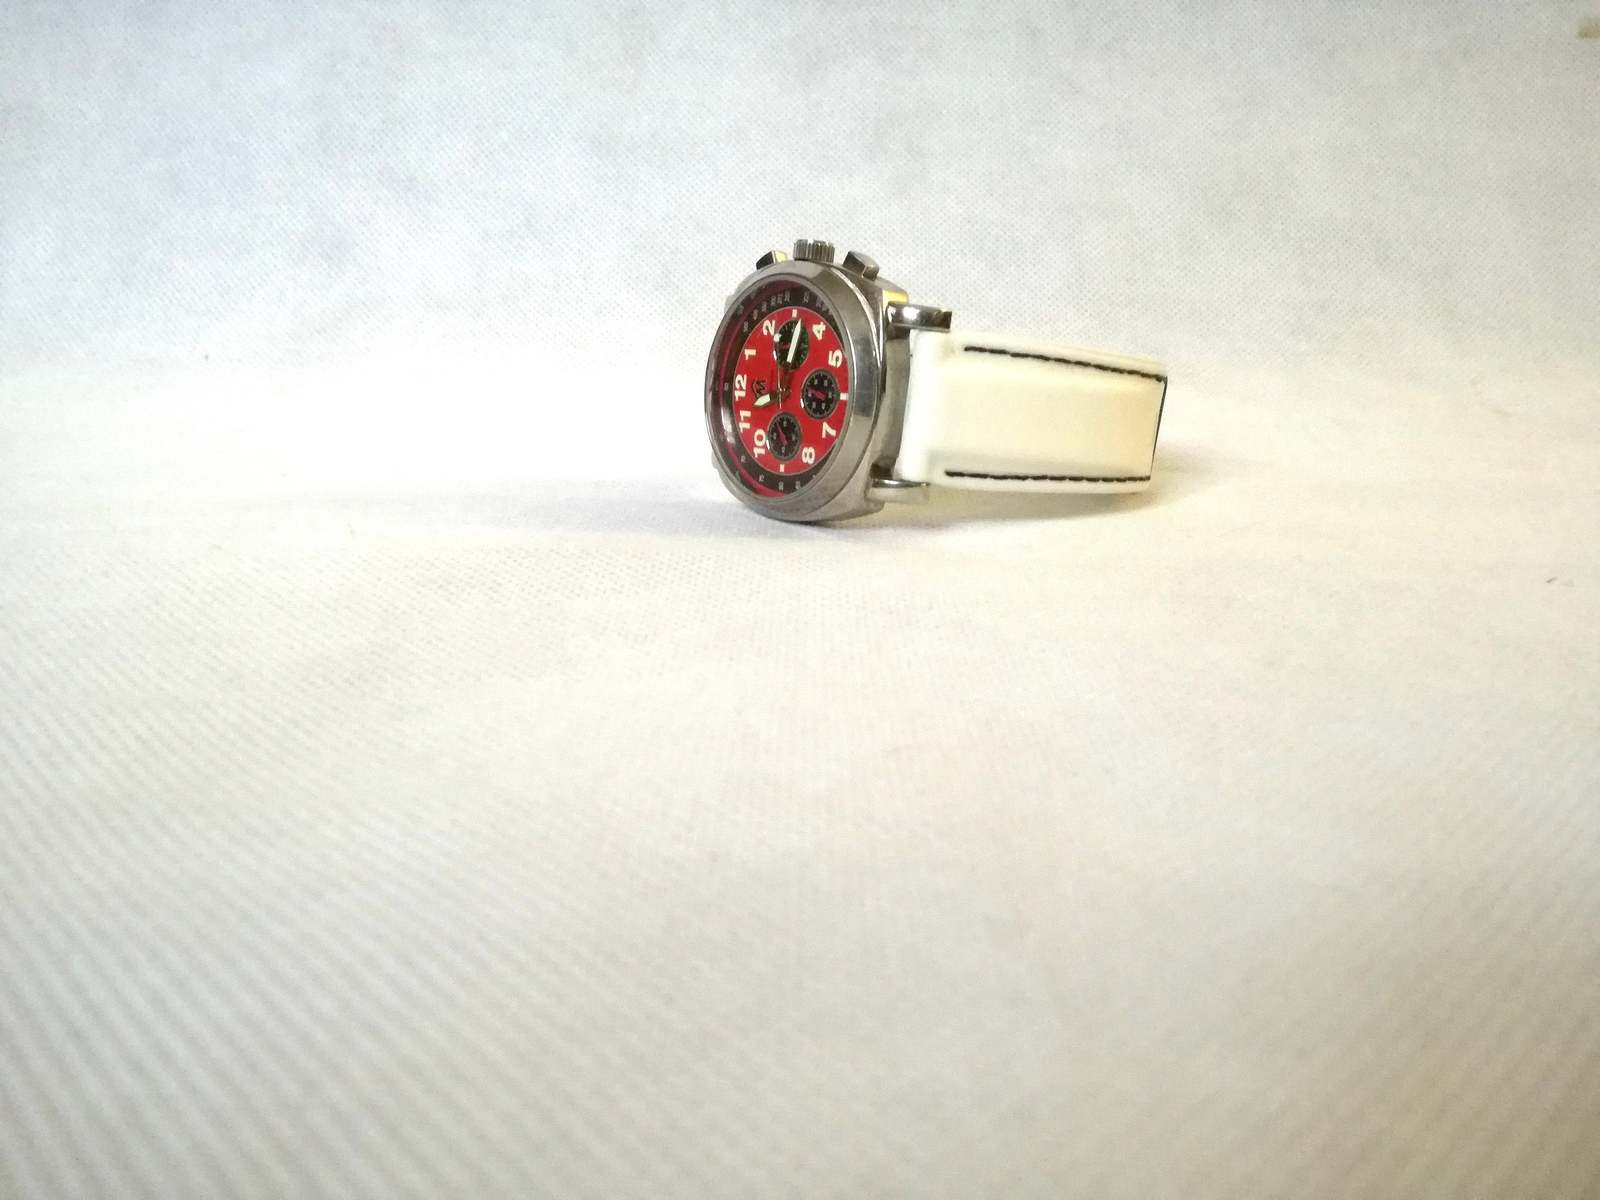 Primary image for Vintage watch / chronograph Rare watch / red rare dial / mans watch / Gents  / W